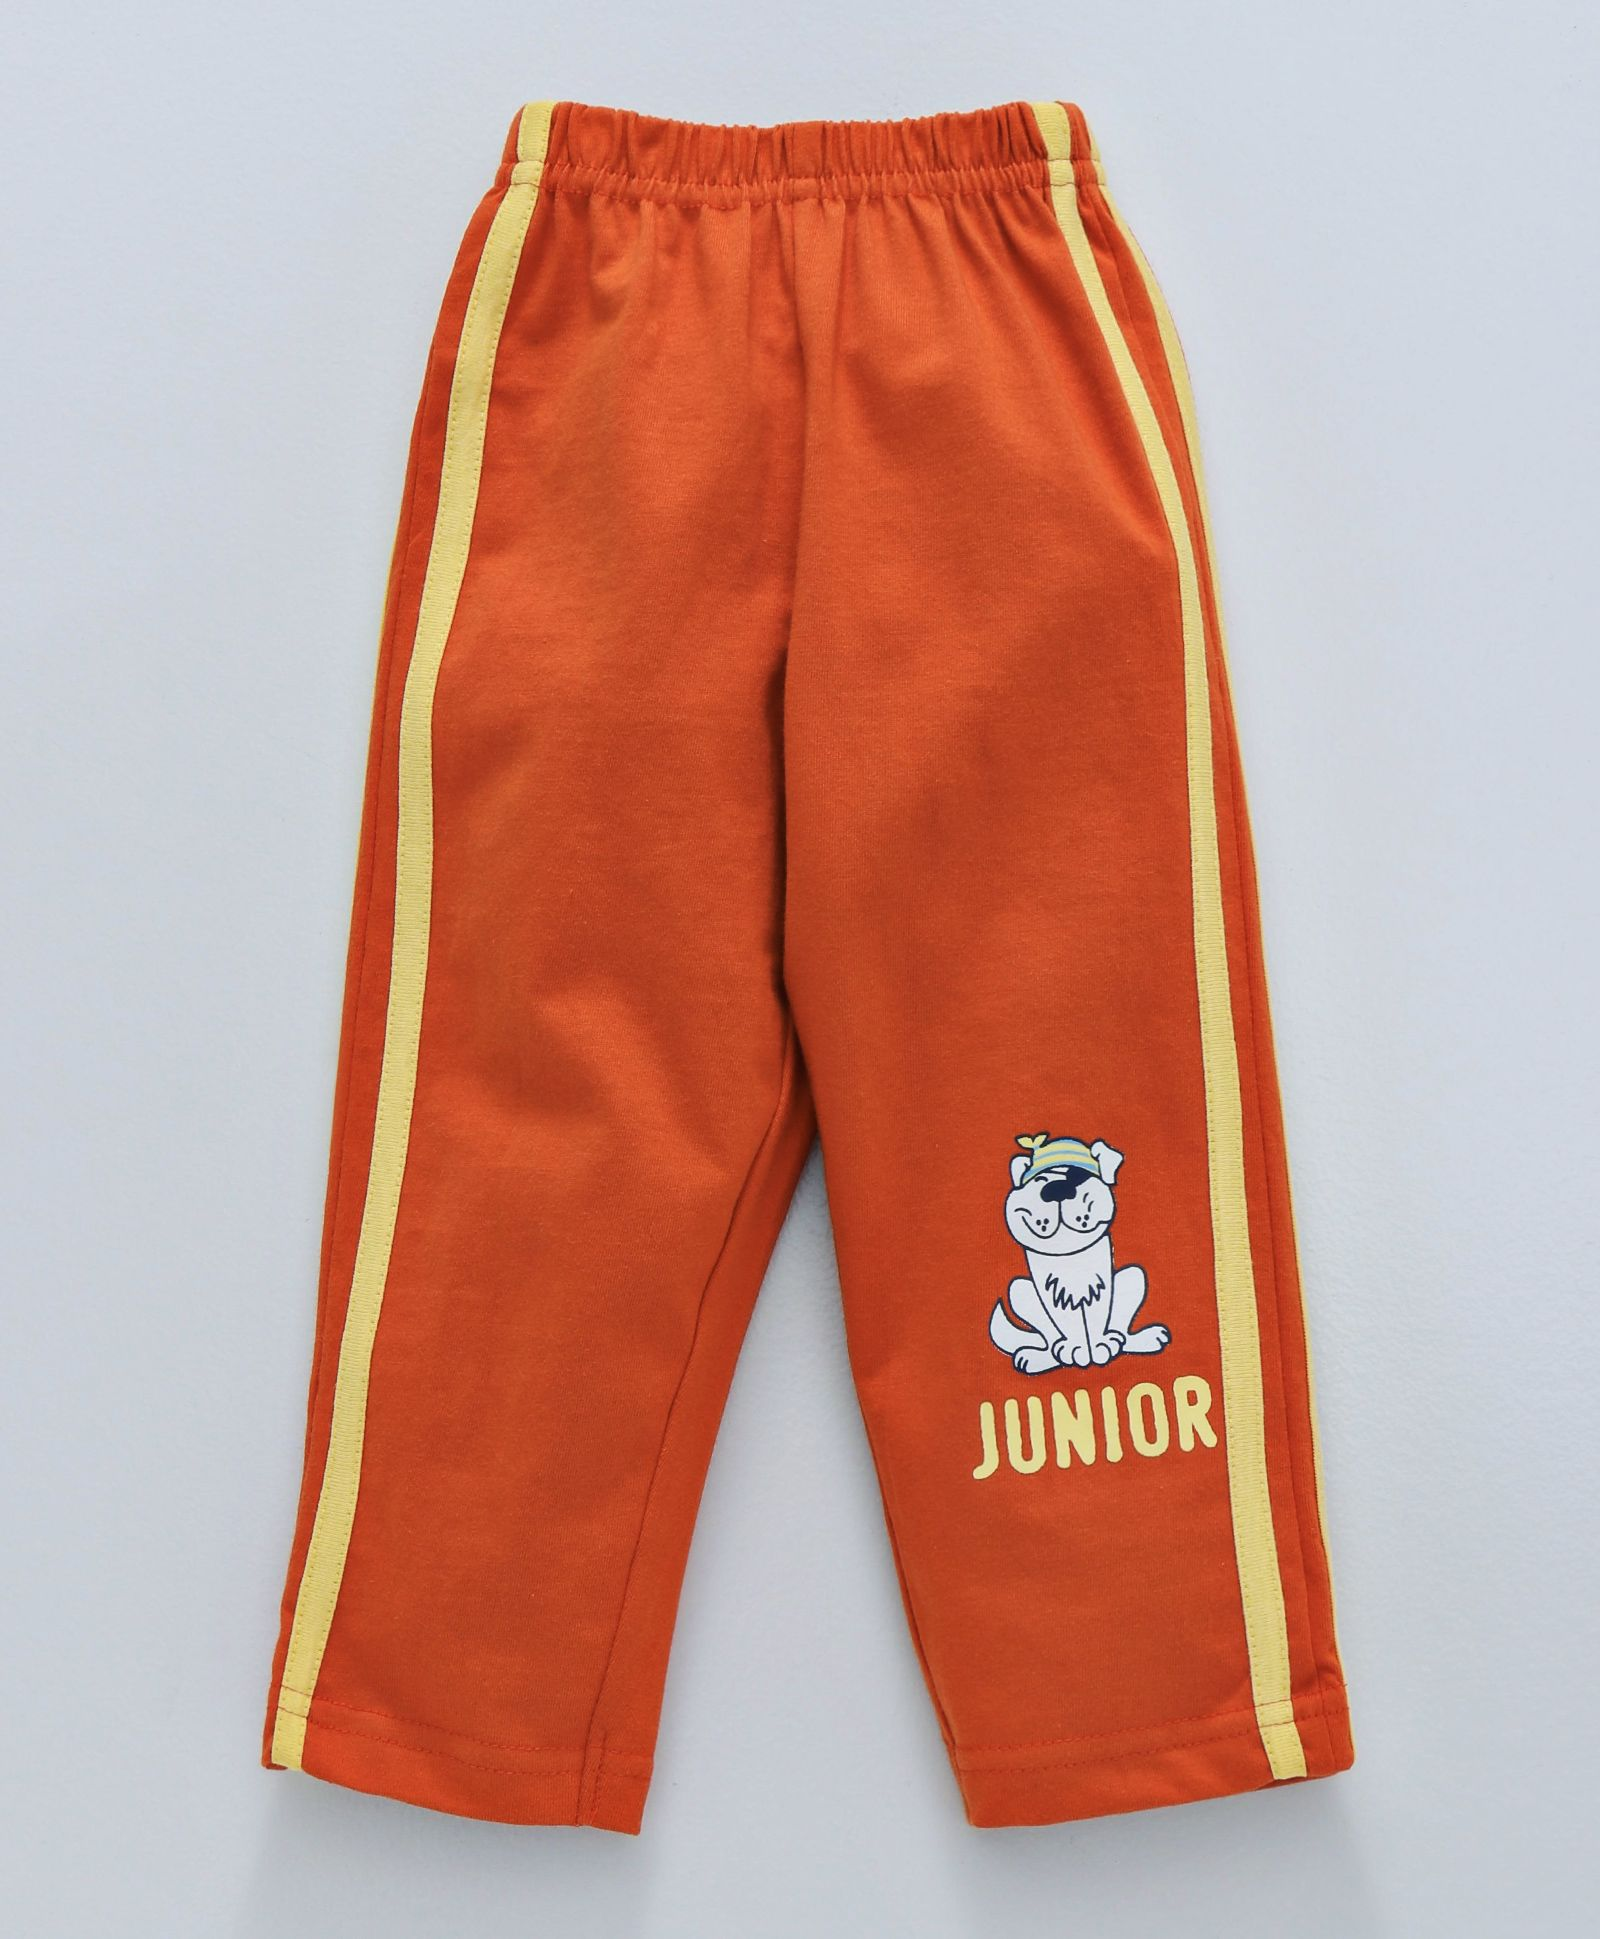 57829a8141de Buy Tango Full Length Track Pants Junior Print Orange for Boys (6-12 ...